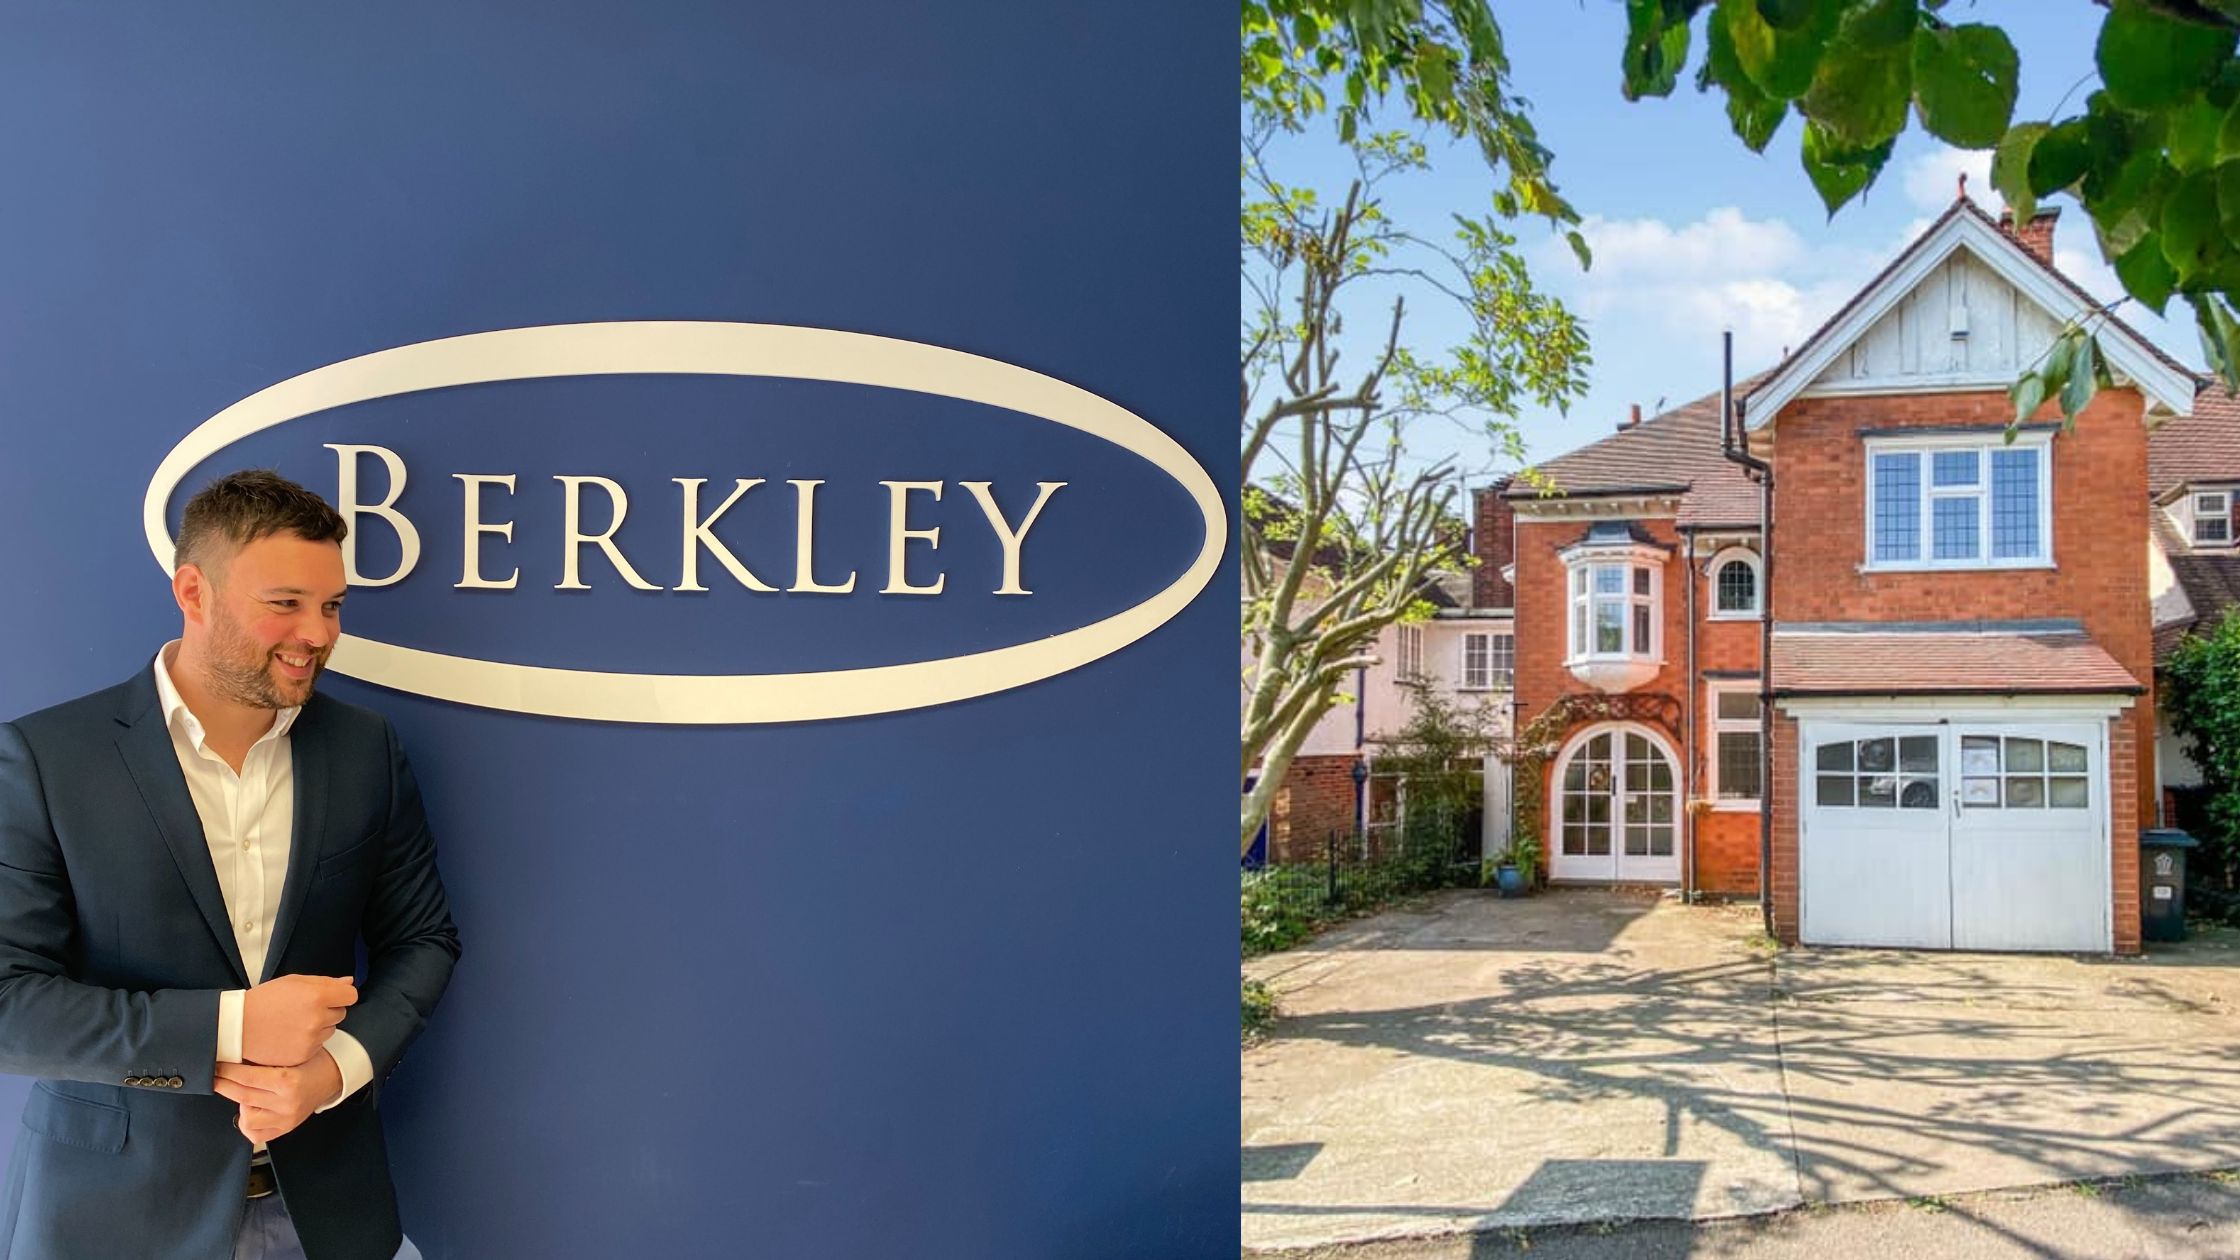 Sales manager at Berkley Estate & Letting Agents, Alex Broadley, with his insight on 'if only those walls could talk'